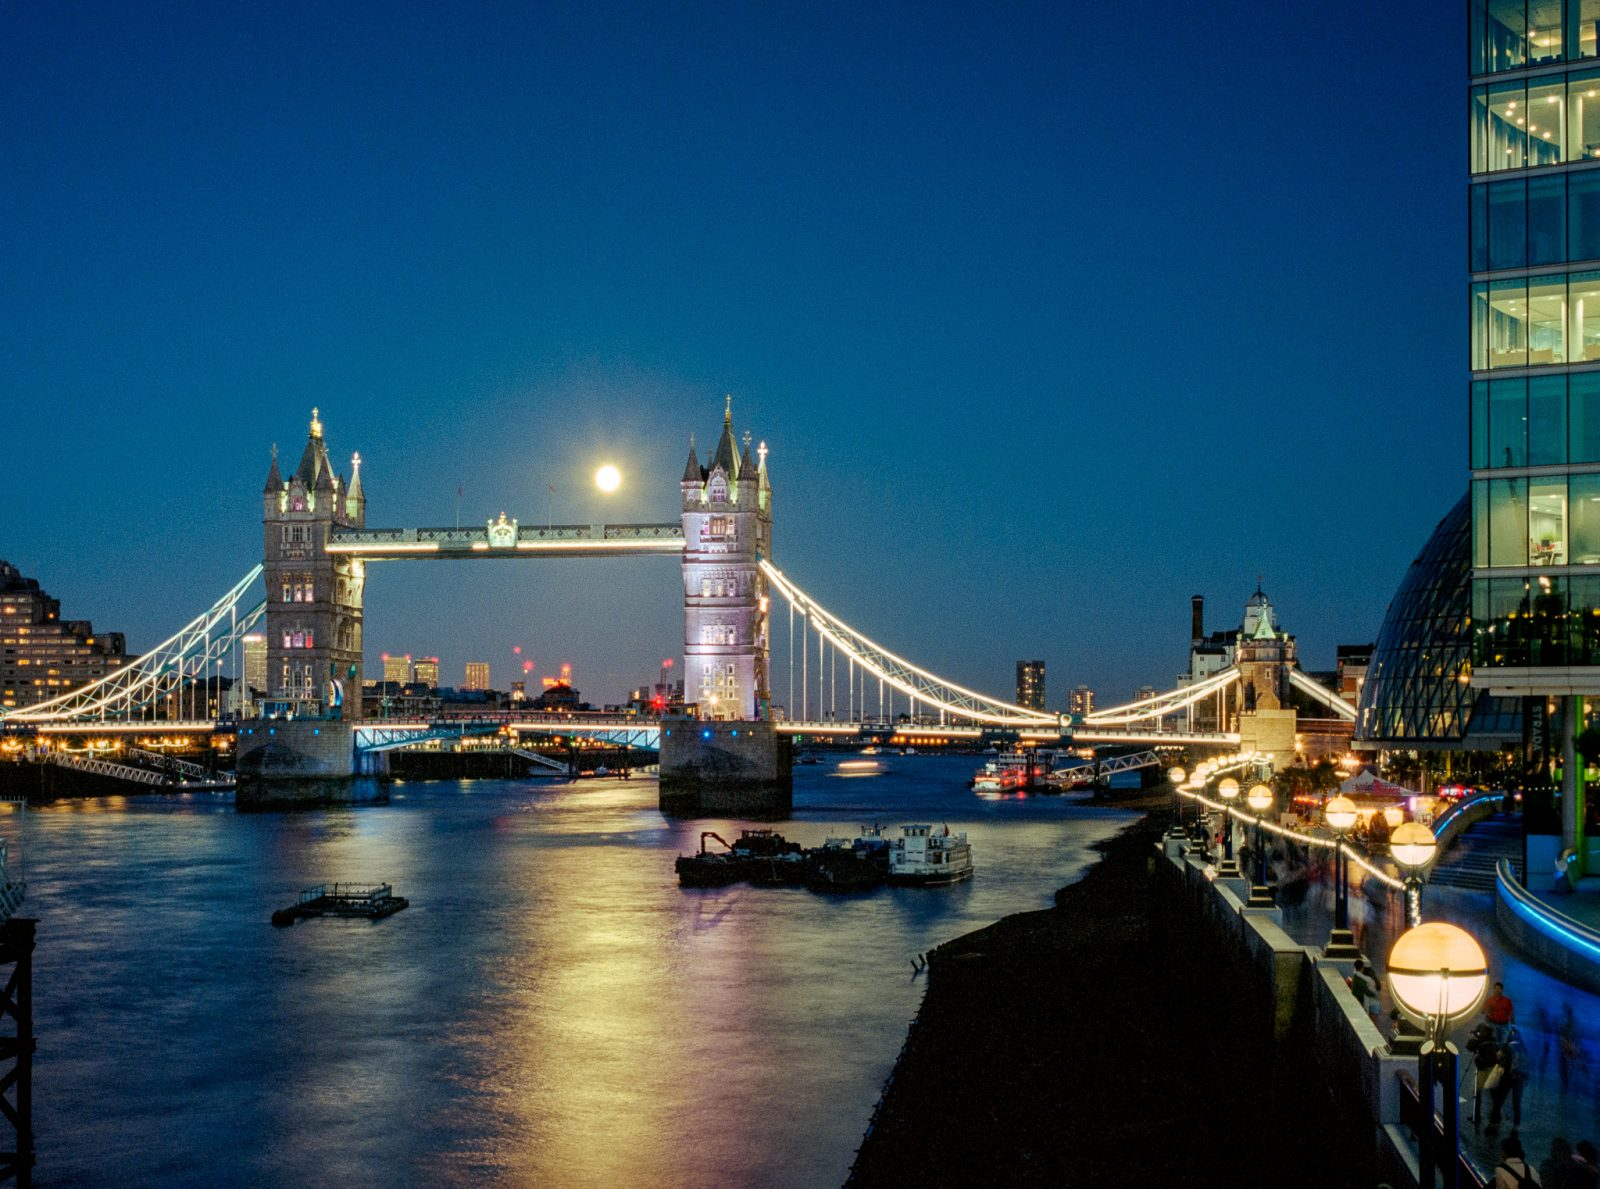 Full Moons over Tower Bridge